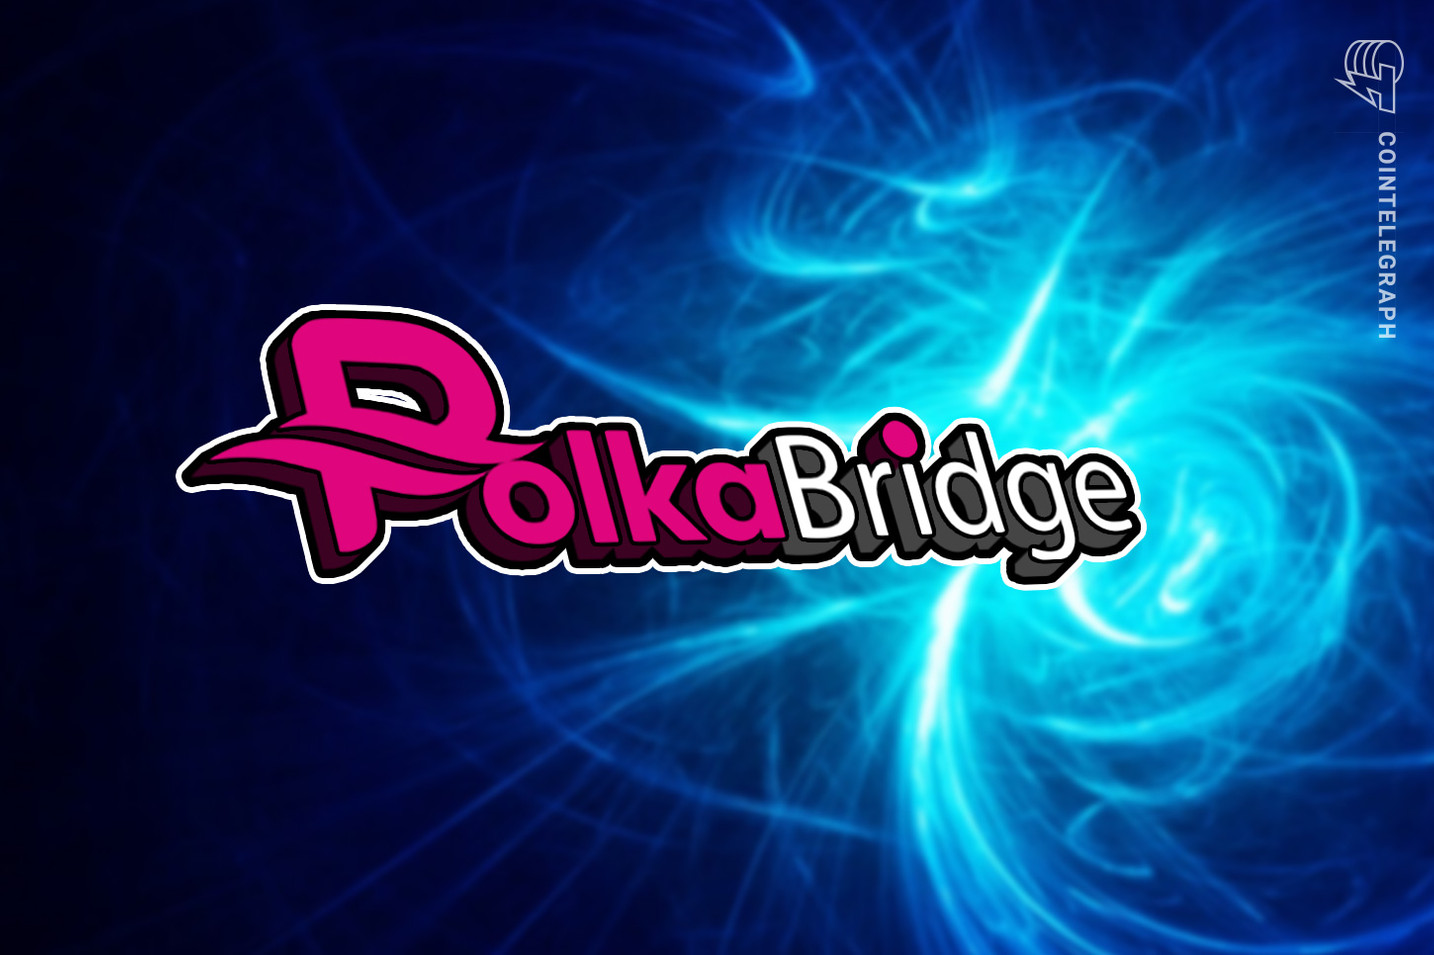 PolkaBridge integrates with Polygon full-stack scaling solution